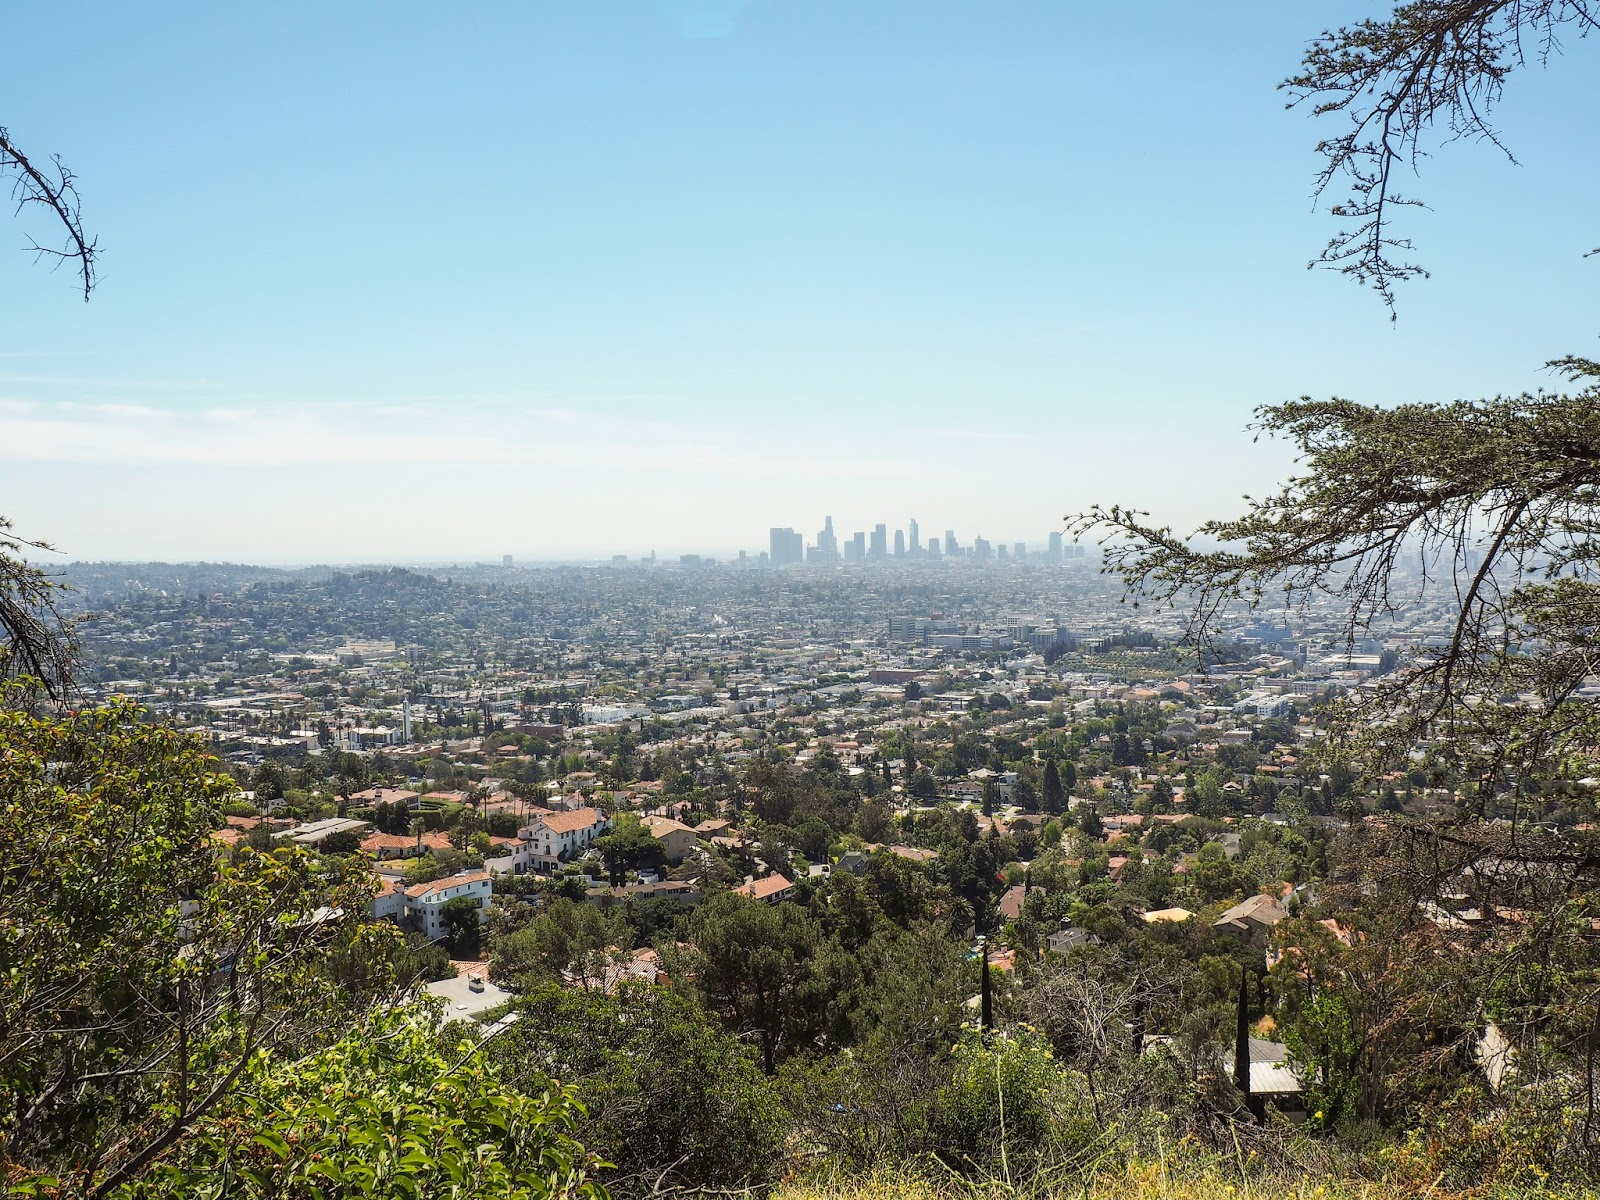 Easter Sunday at Griffith Park